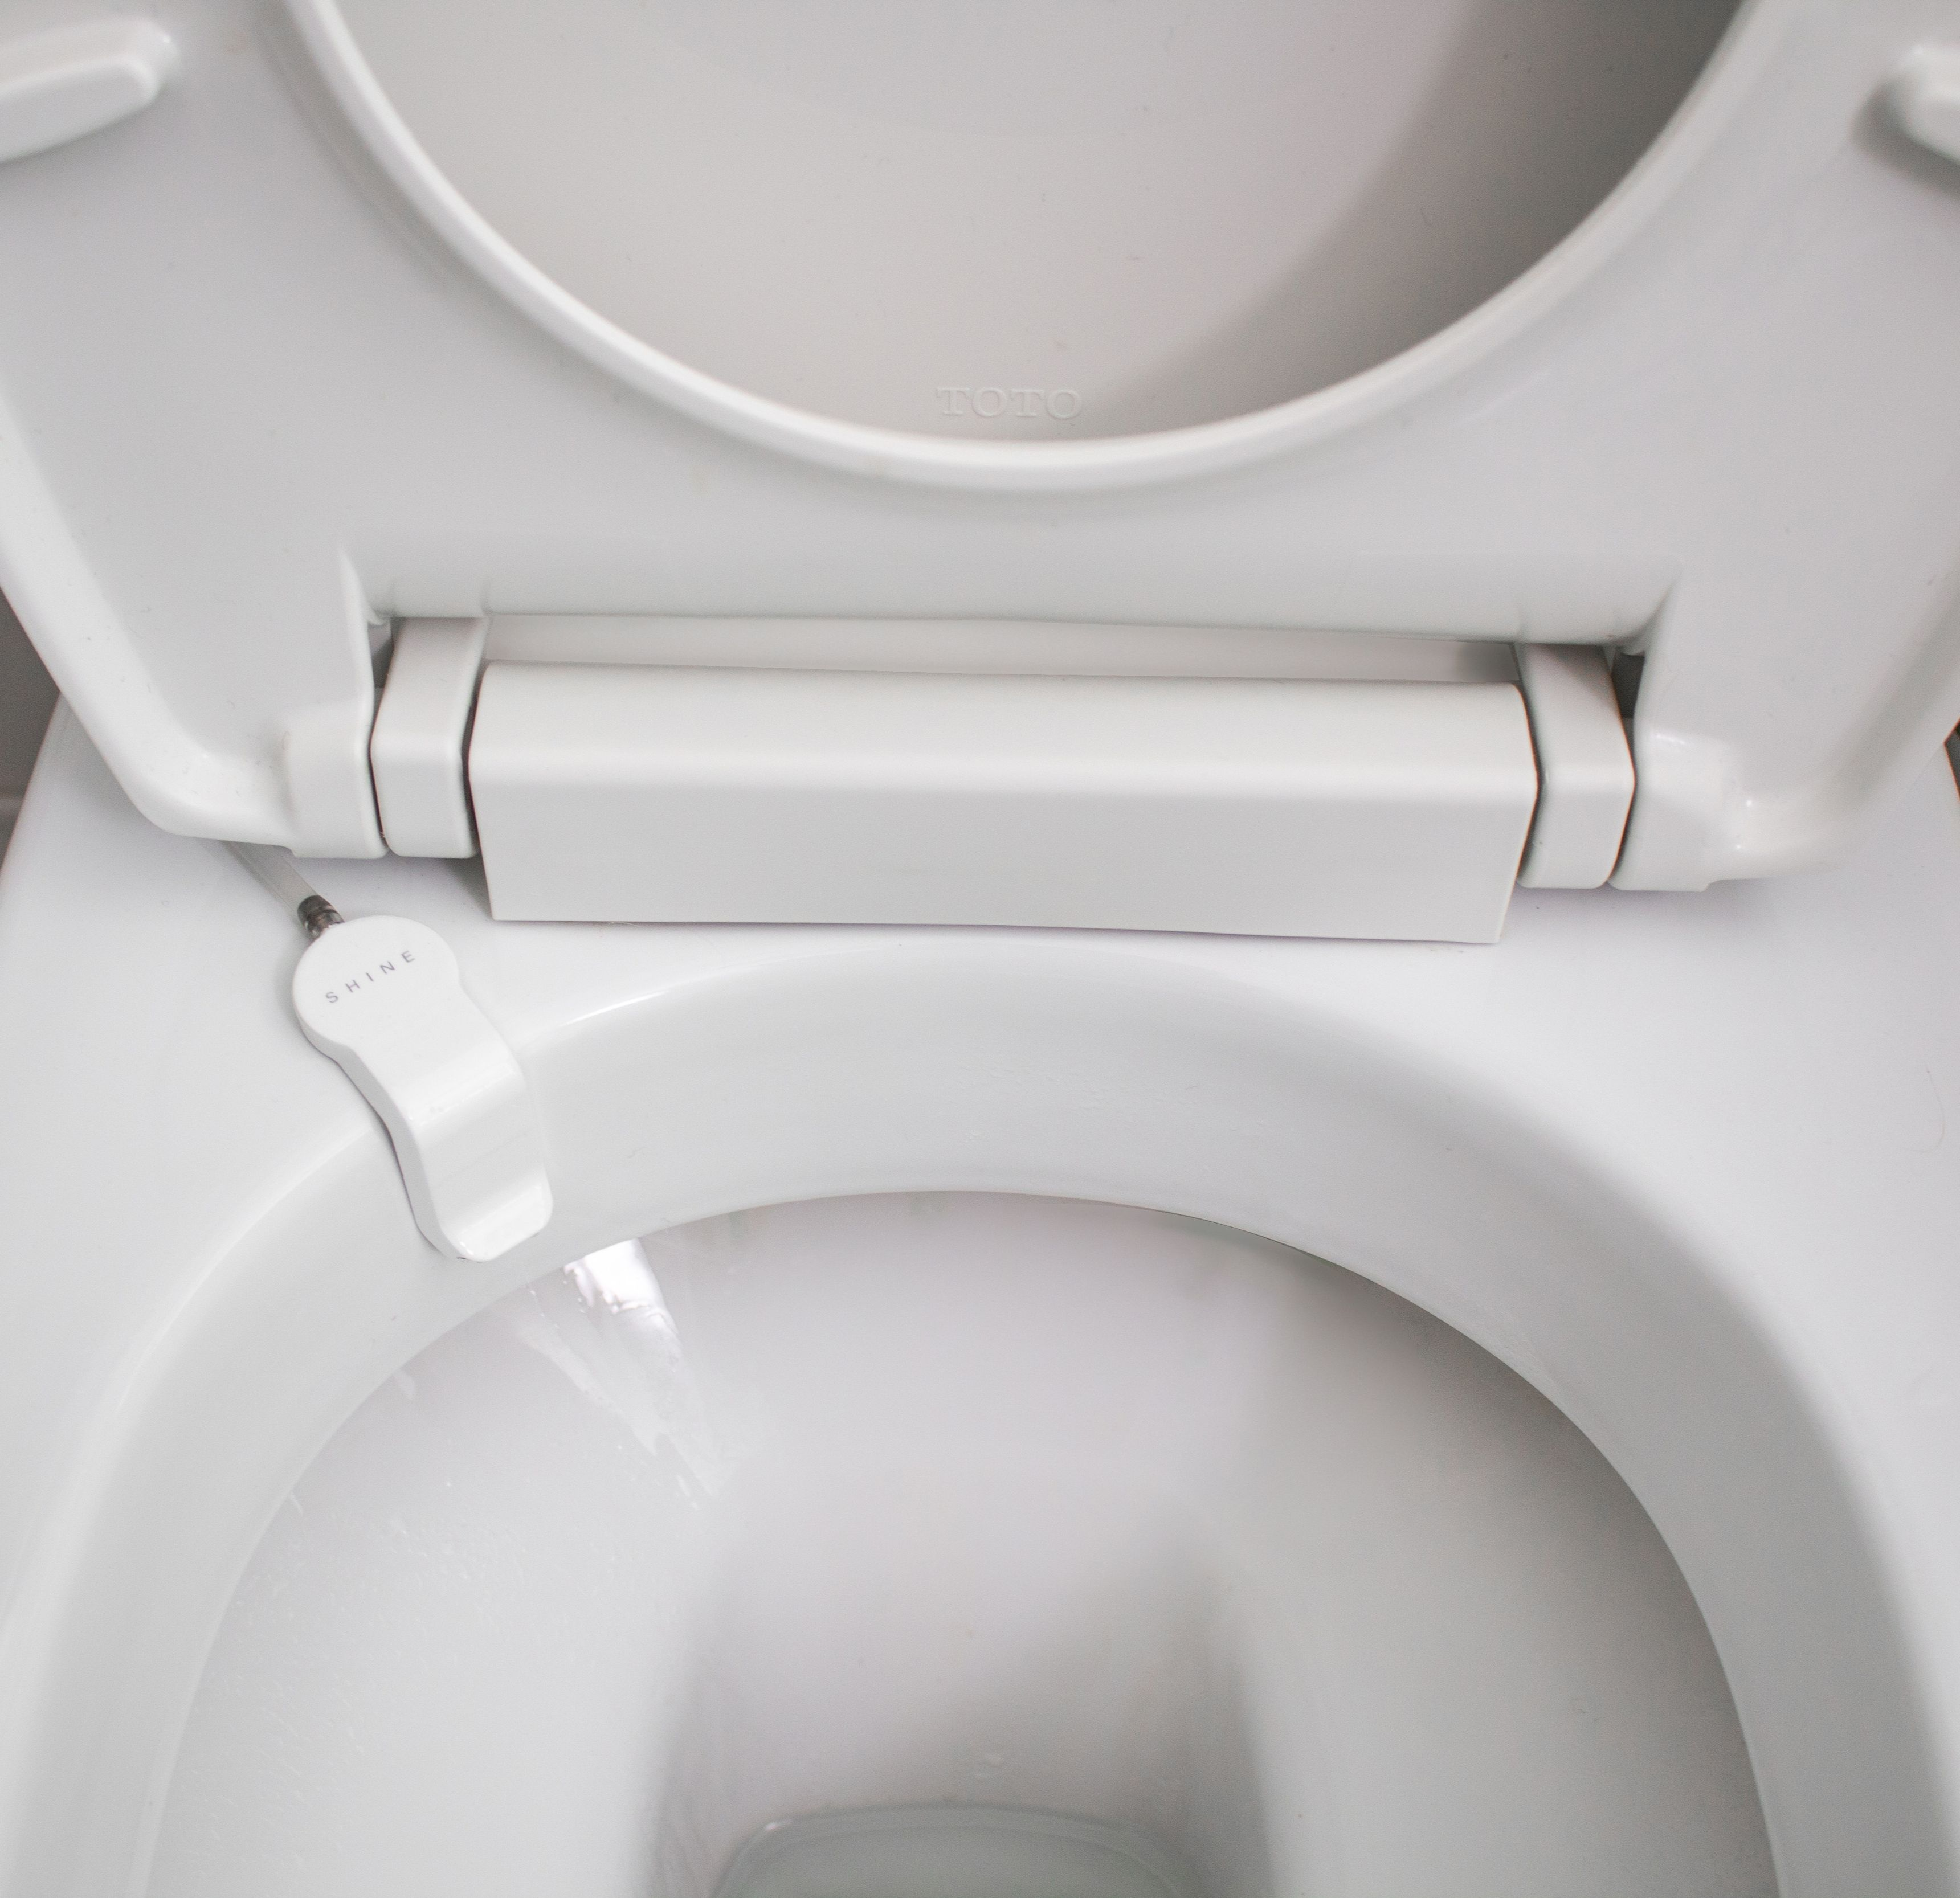 Keep Looking Down The Toilet Bowl You Will See Nothing But Your Beautiful Reflection Because Shine Flushes A In 2020 Clean Toilet Bowl Toilet Cleaning Toilet Bowl